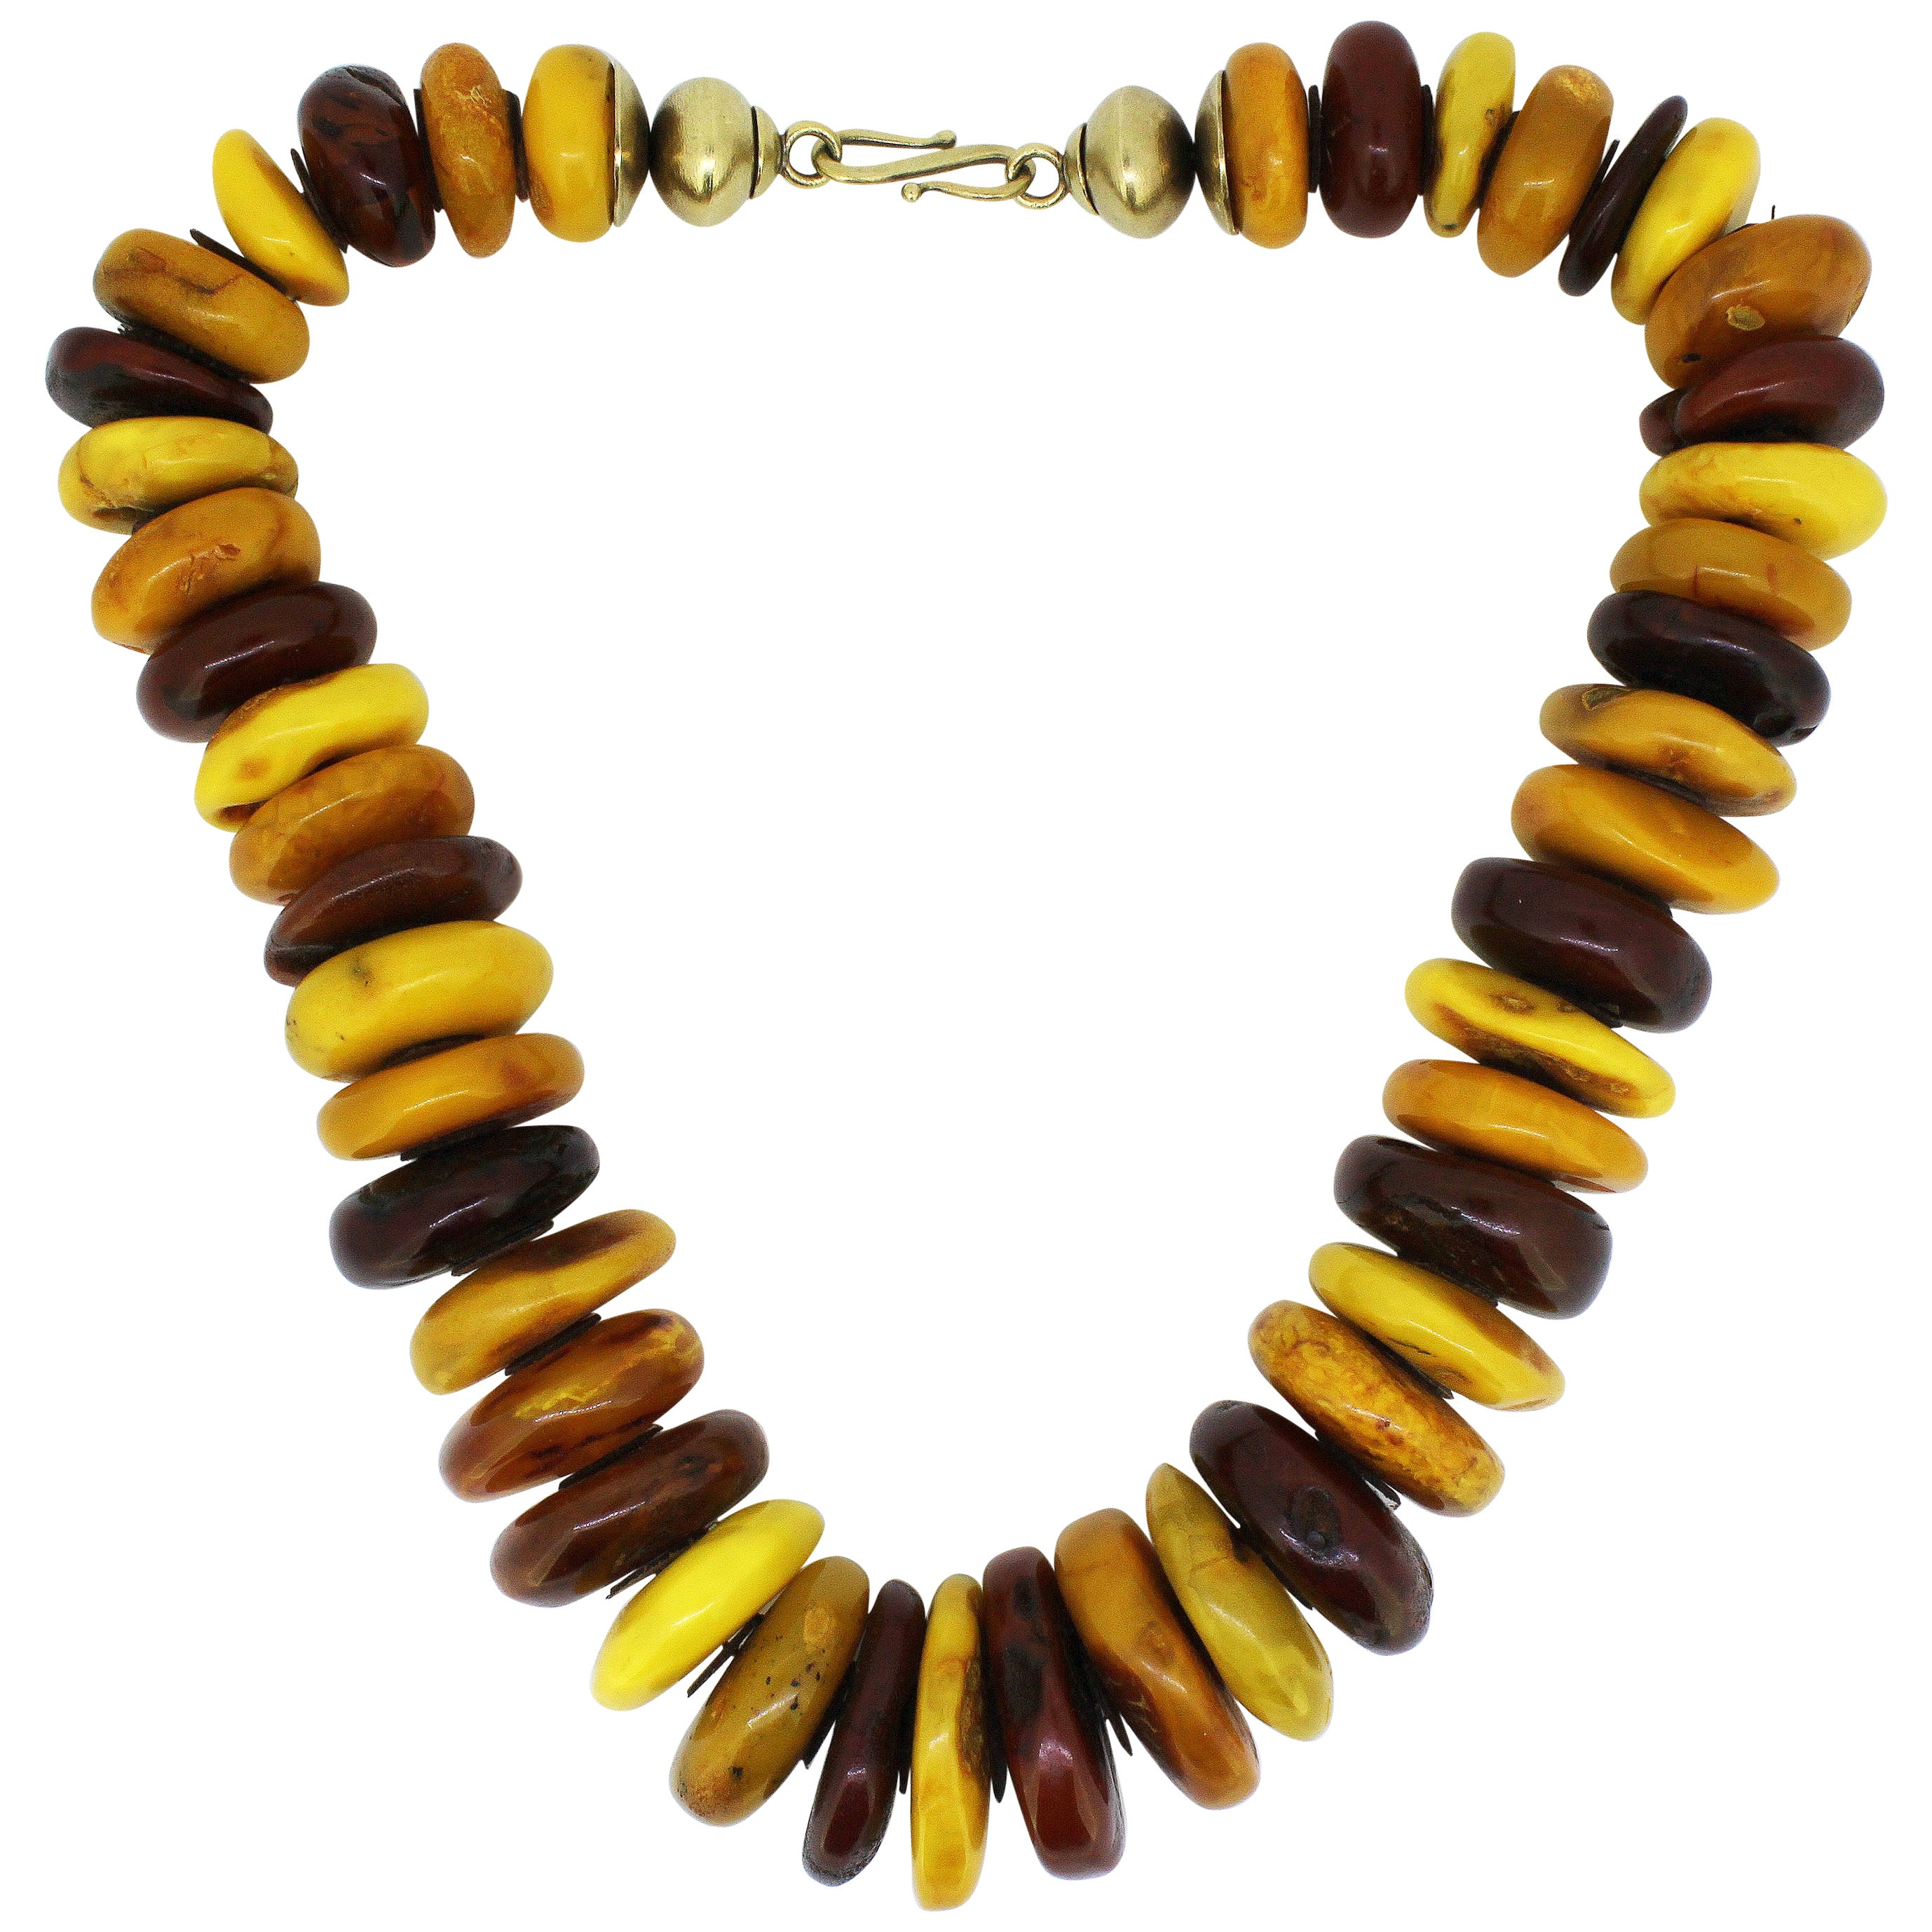 Natural Baltic Amber Necklace in the Form of Tablets